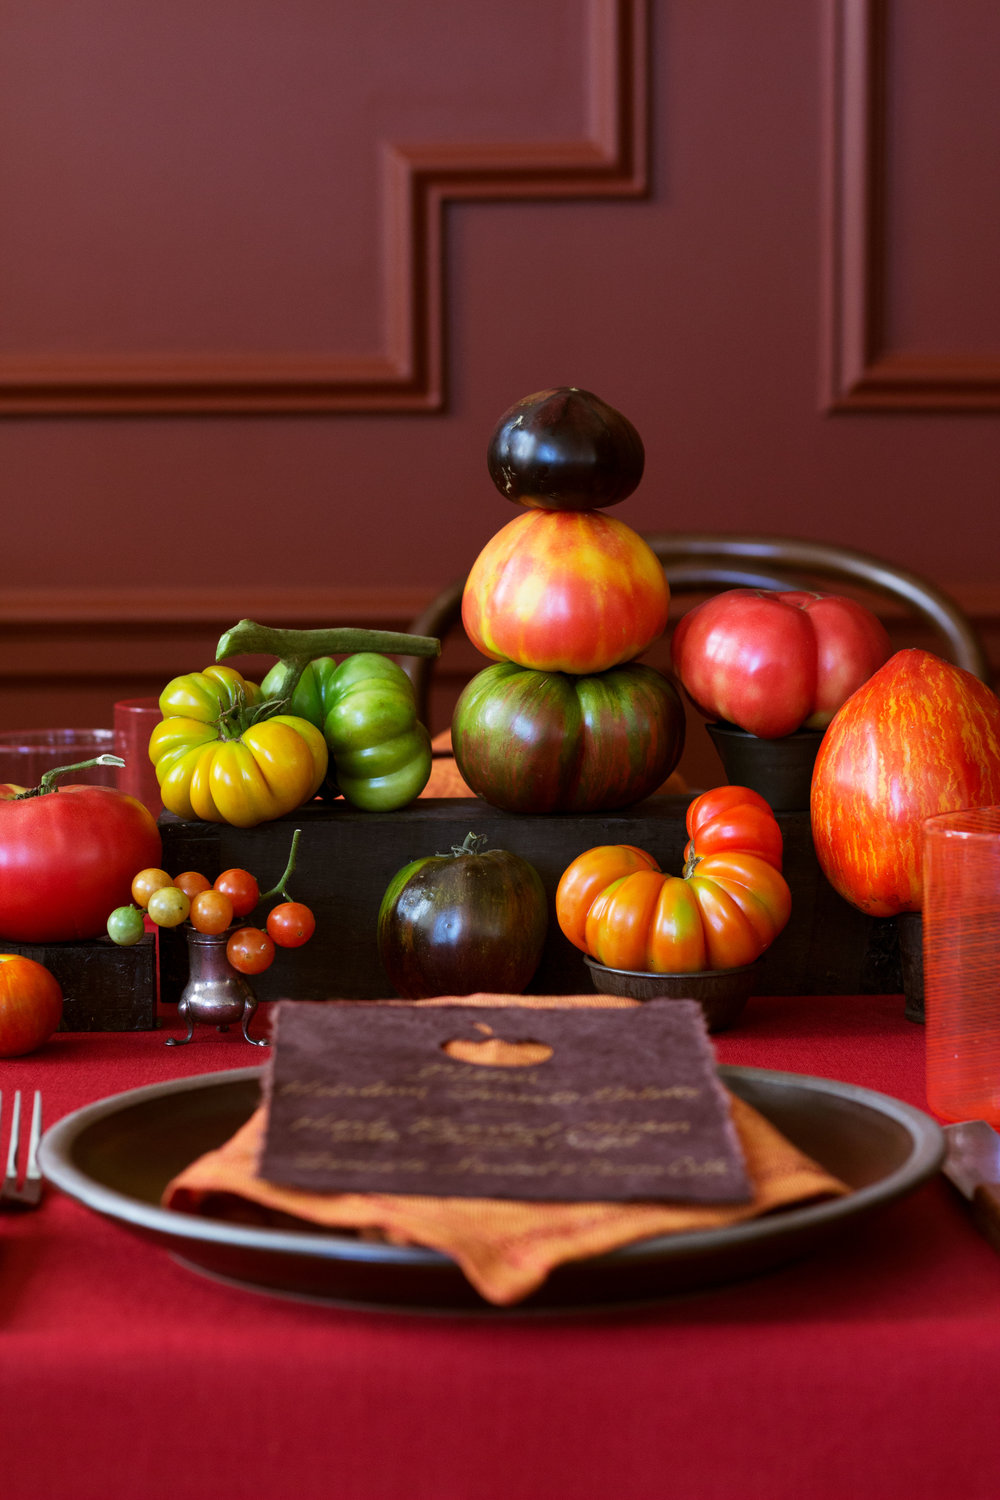 DavidStarkDesign_tomatoes_table_place_setting.jpg